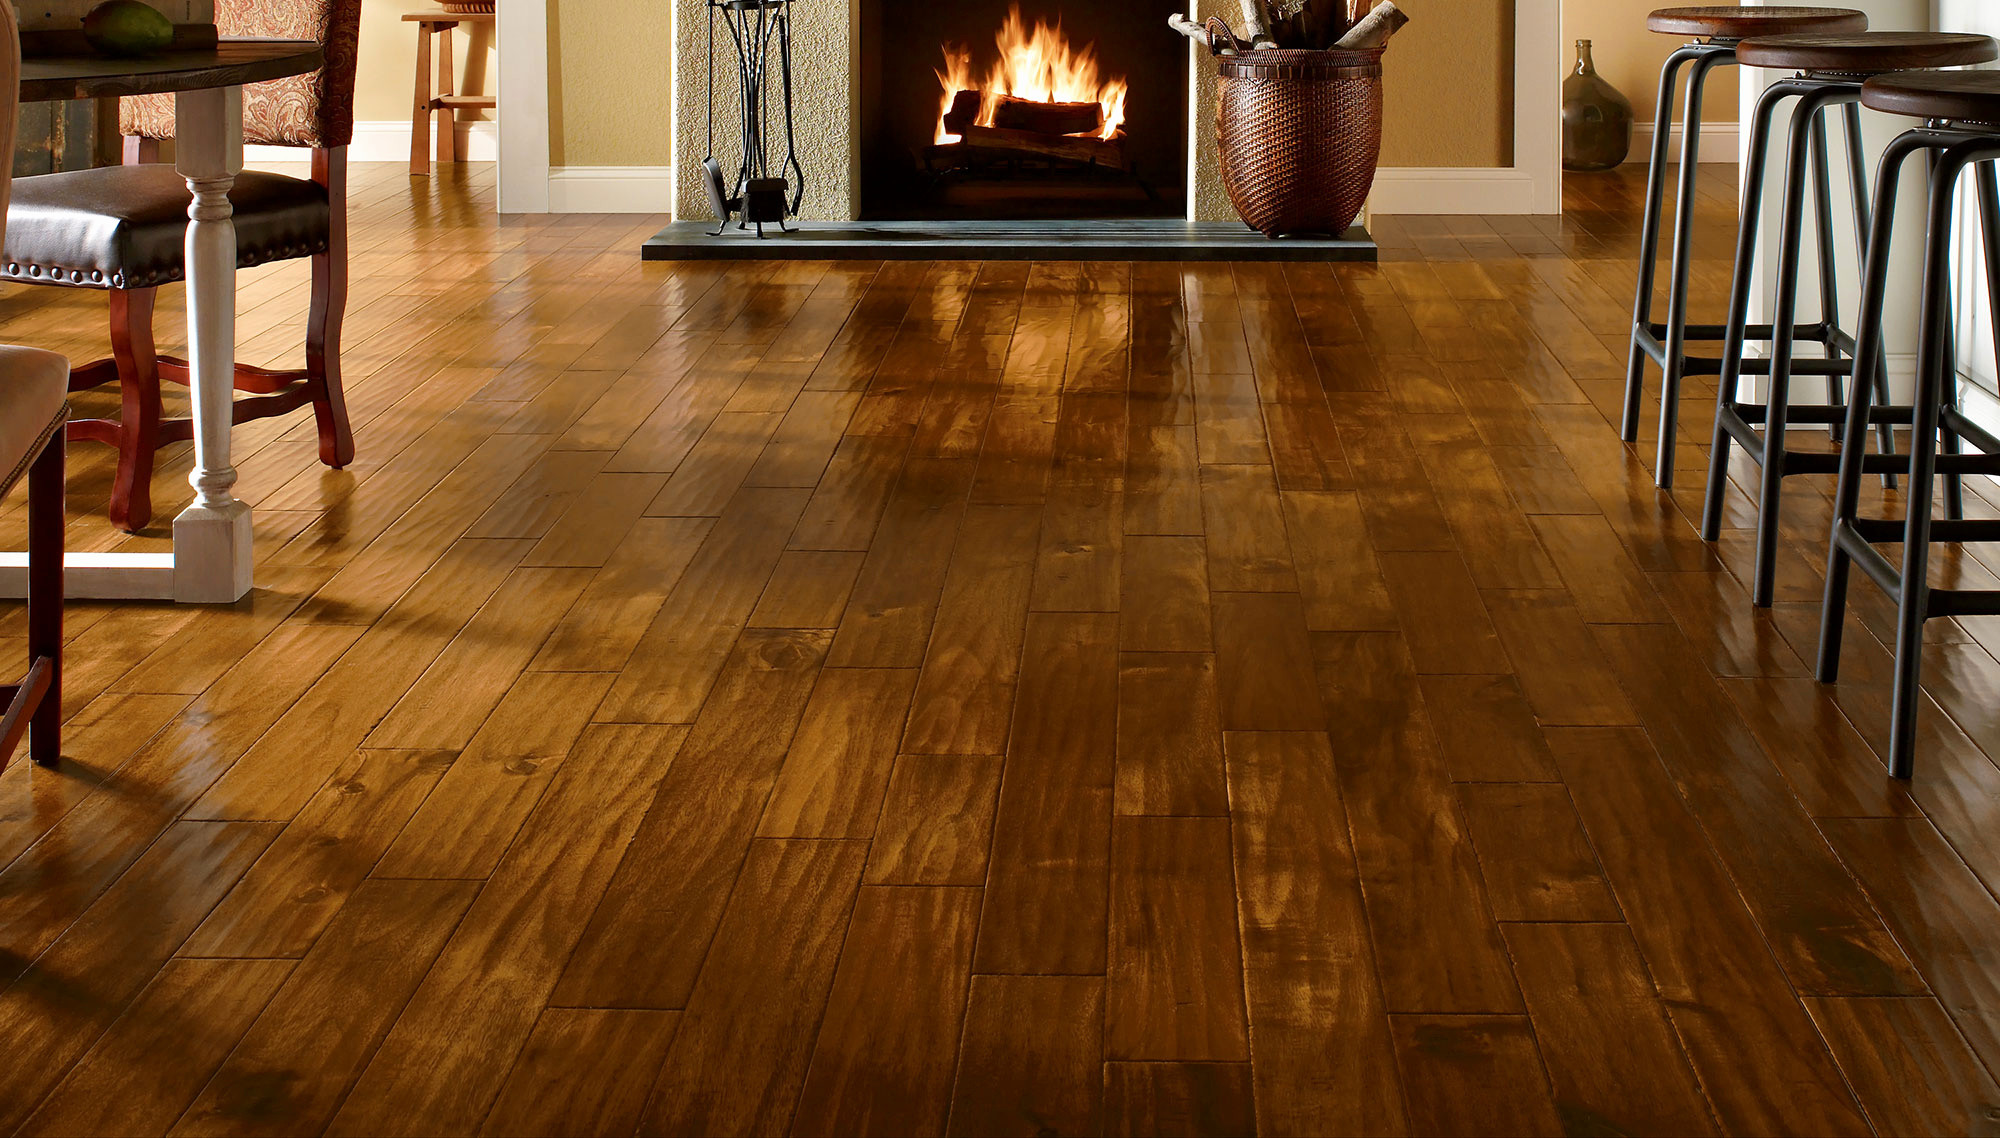 clearance solid hardwood flooring of hardwood floor refinishing archives wlcu regarding hardwood floor designs best of appealing discount hardwood flooring 1 big kitchen floor hardwood floor